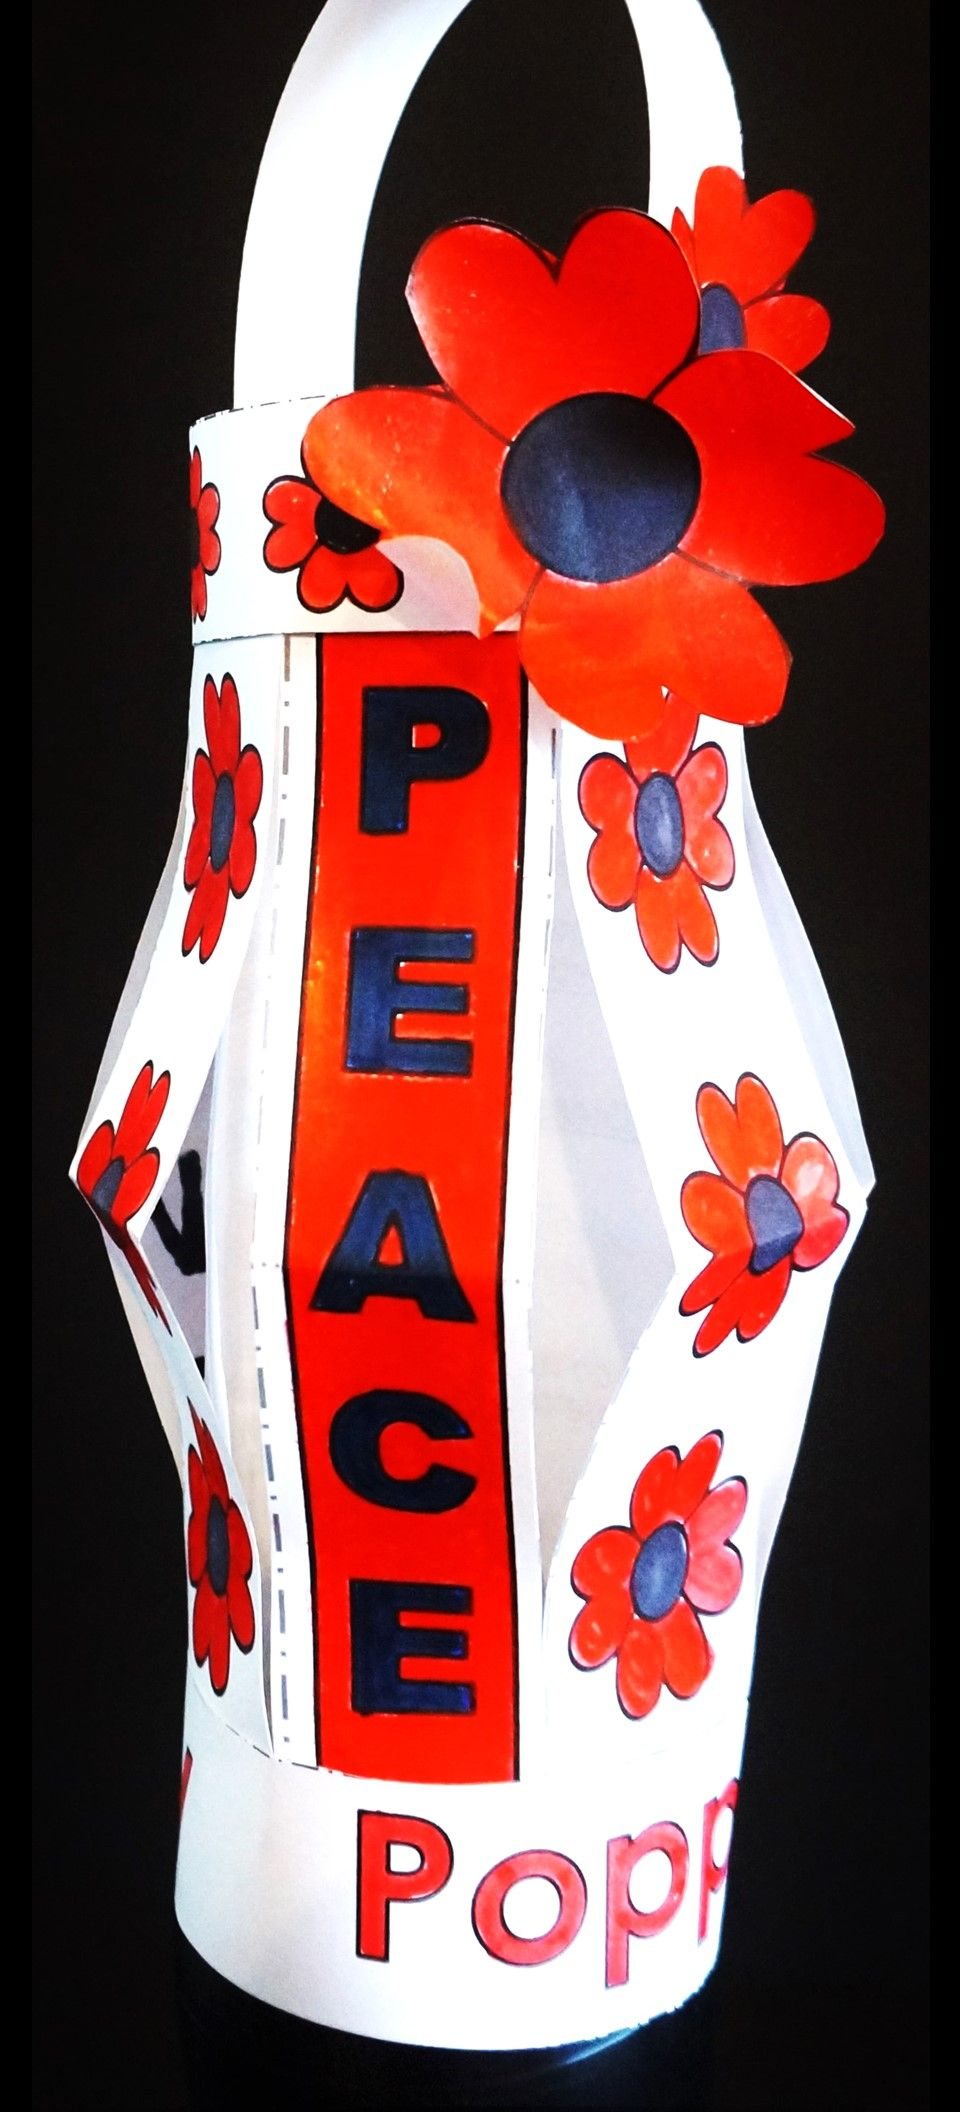 Lest We Forget. ::::: A wonderful Poppy Project to honor Remembrance Day, Veteran's Day, Memorial Day and Anzac Day. There are 12 lantern designs and 14 trim sets with various messages of Remembrance